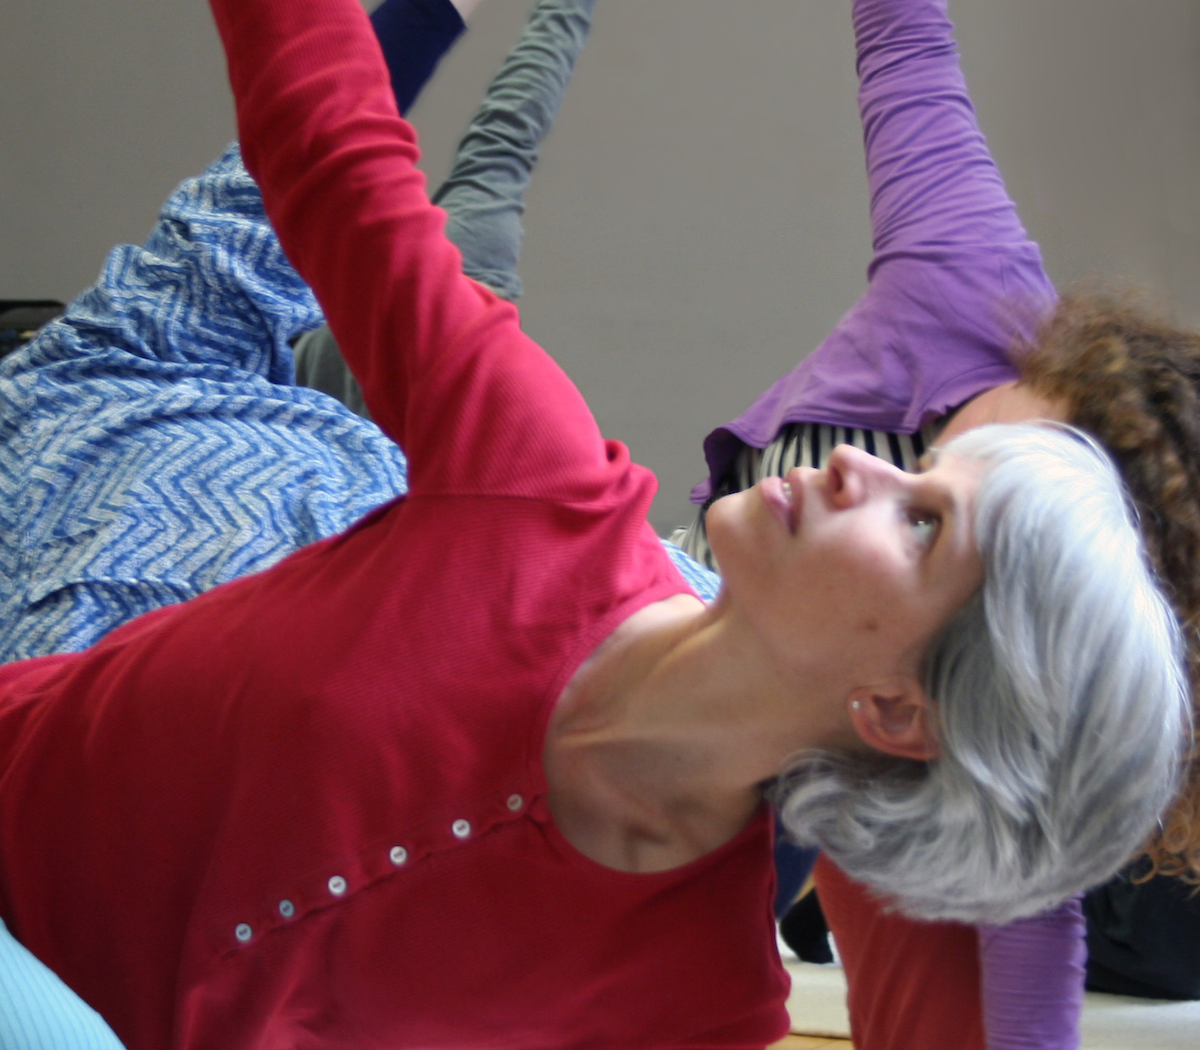 Feldenkrais Method: Awareness for movement